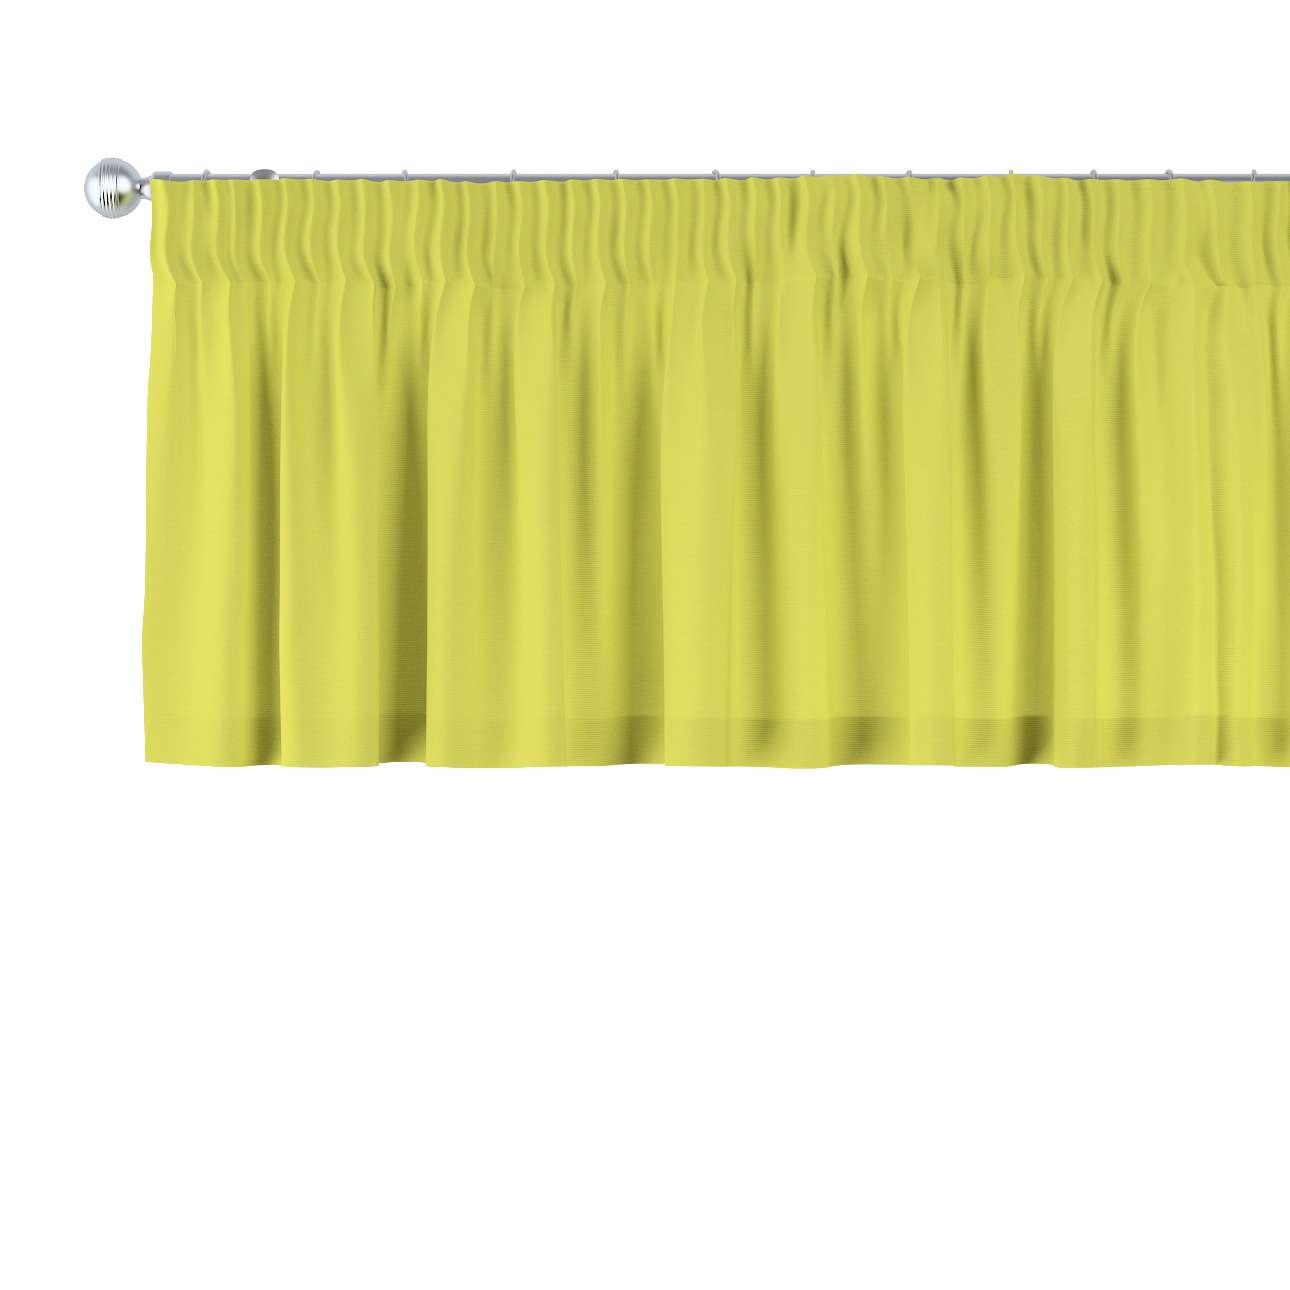 Pencil pleat pelmet 130 x 40 cm (51 x 16 inch) in collection Jupiter, fabric: 127-50